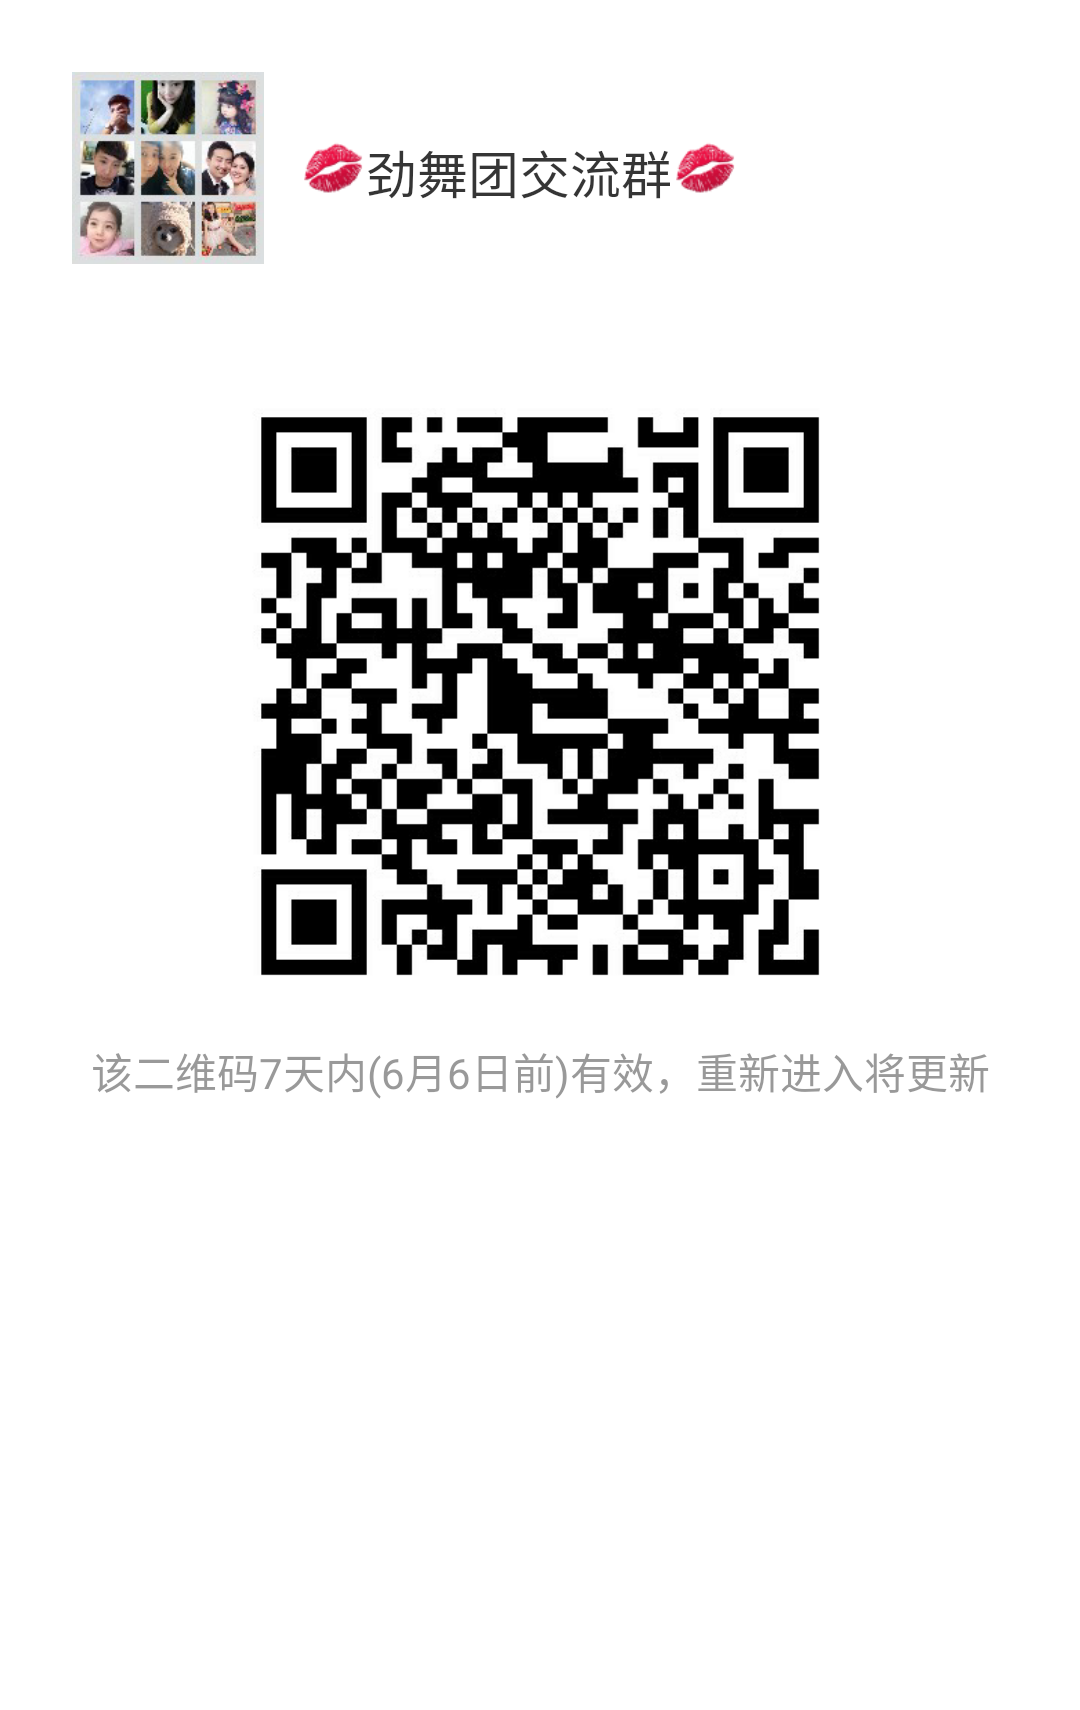 mmqrcode1464575986201.png